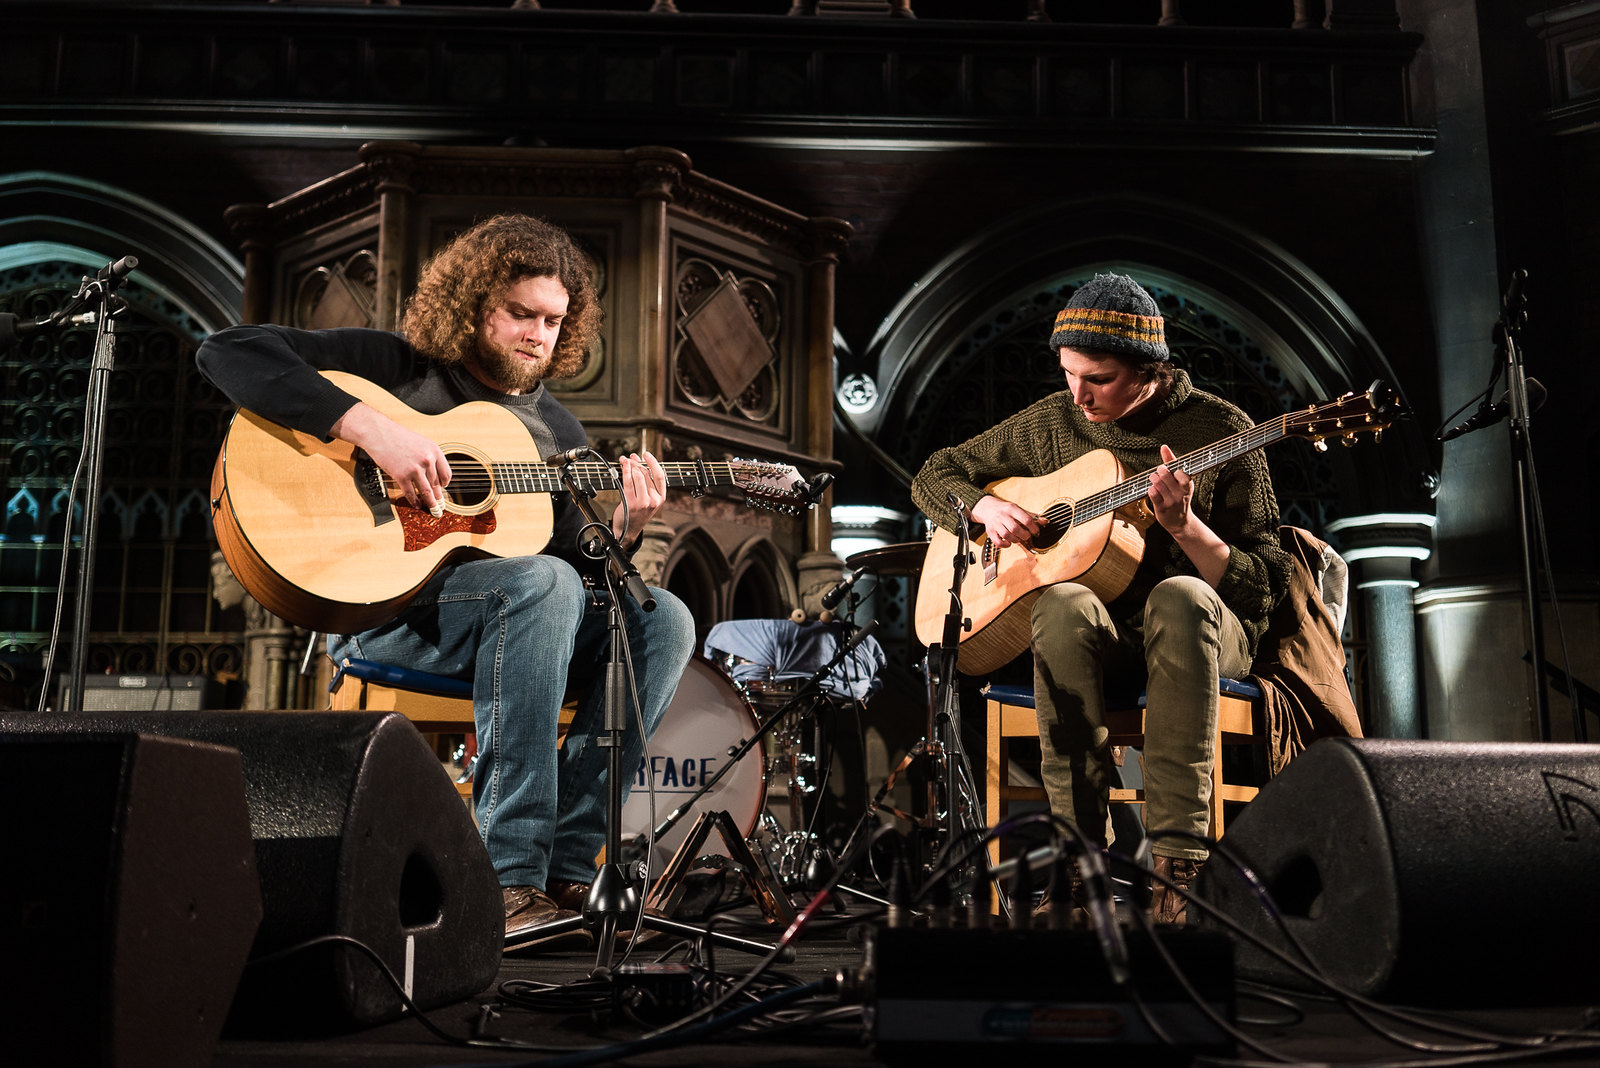 Daylight Music 215 - Jim Ghedi and Toby Hay